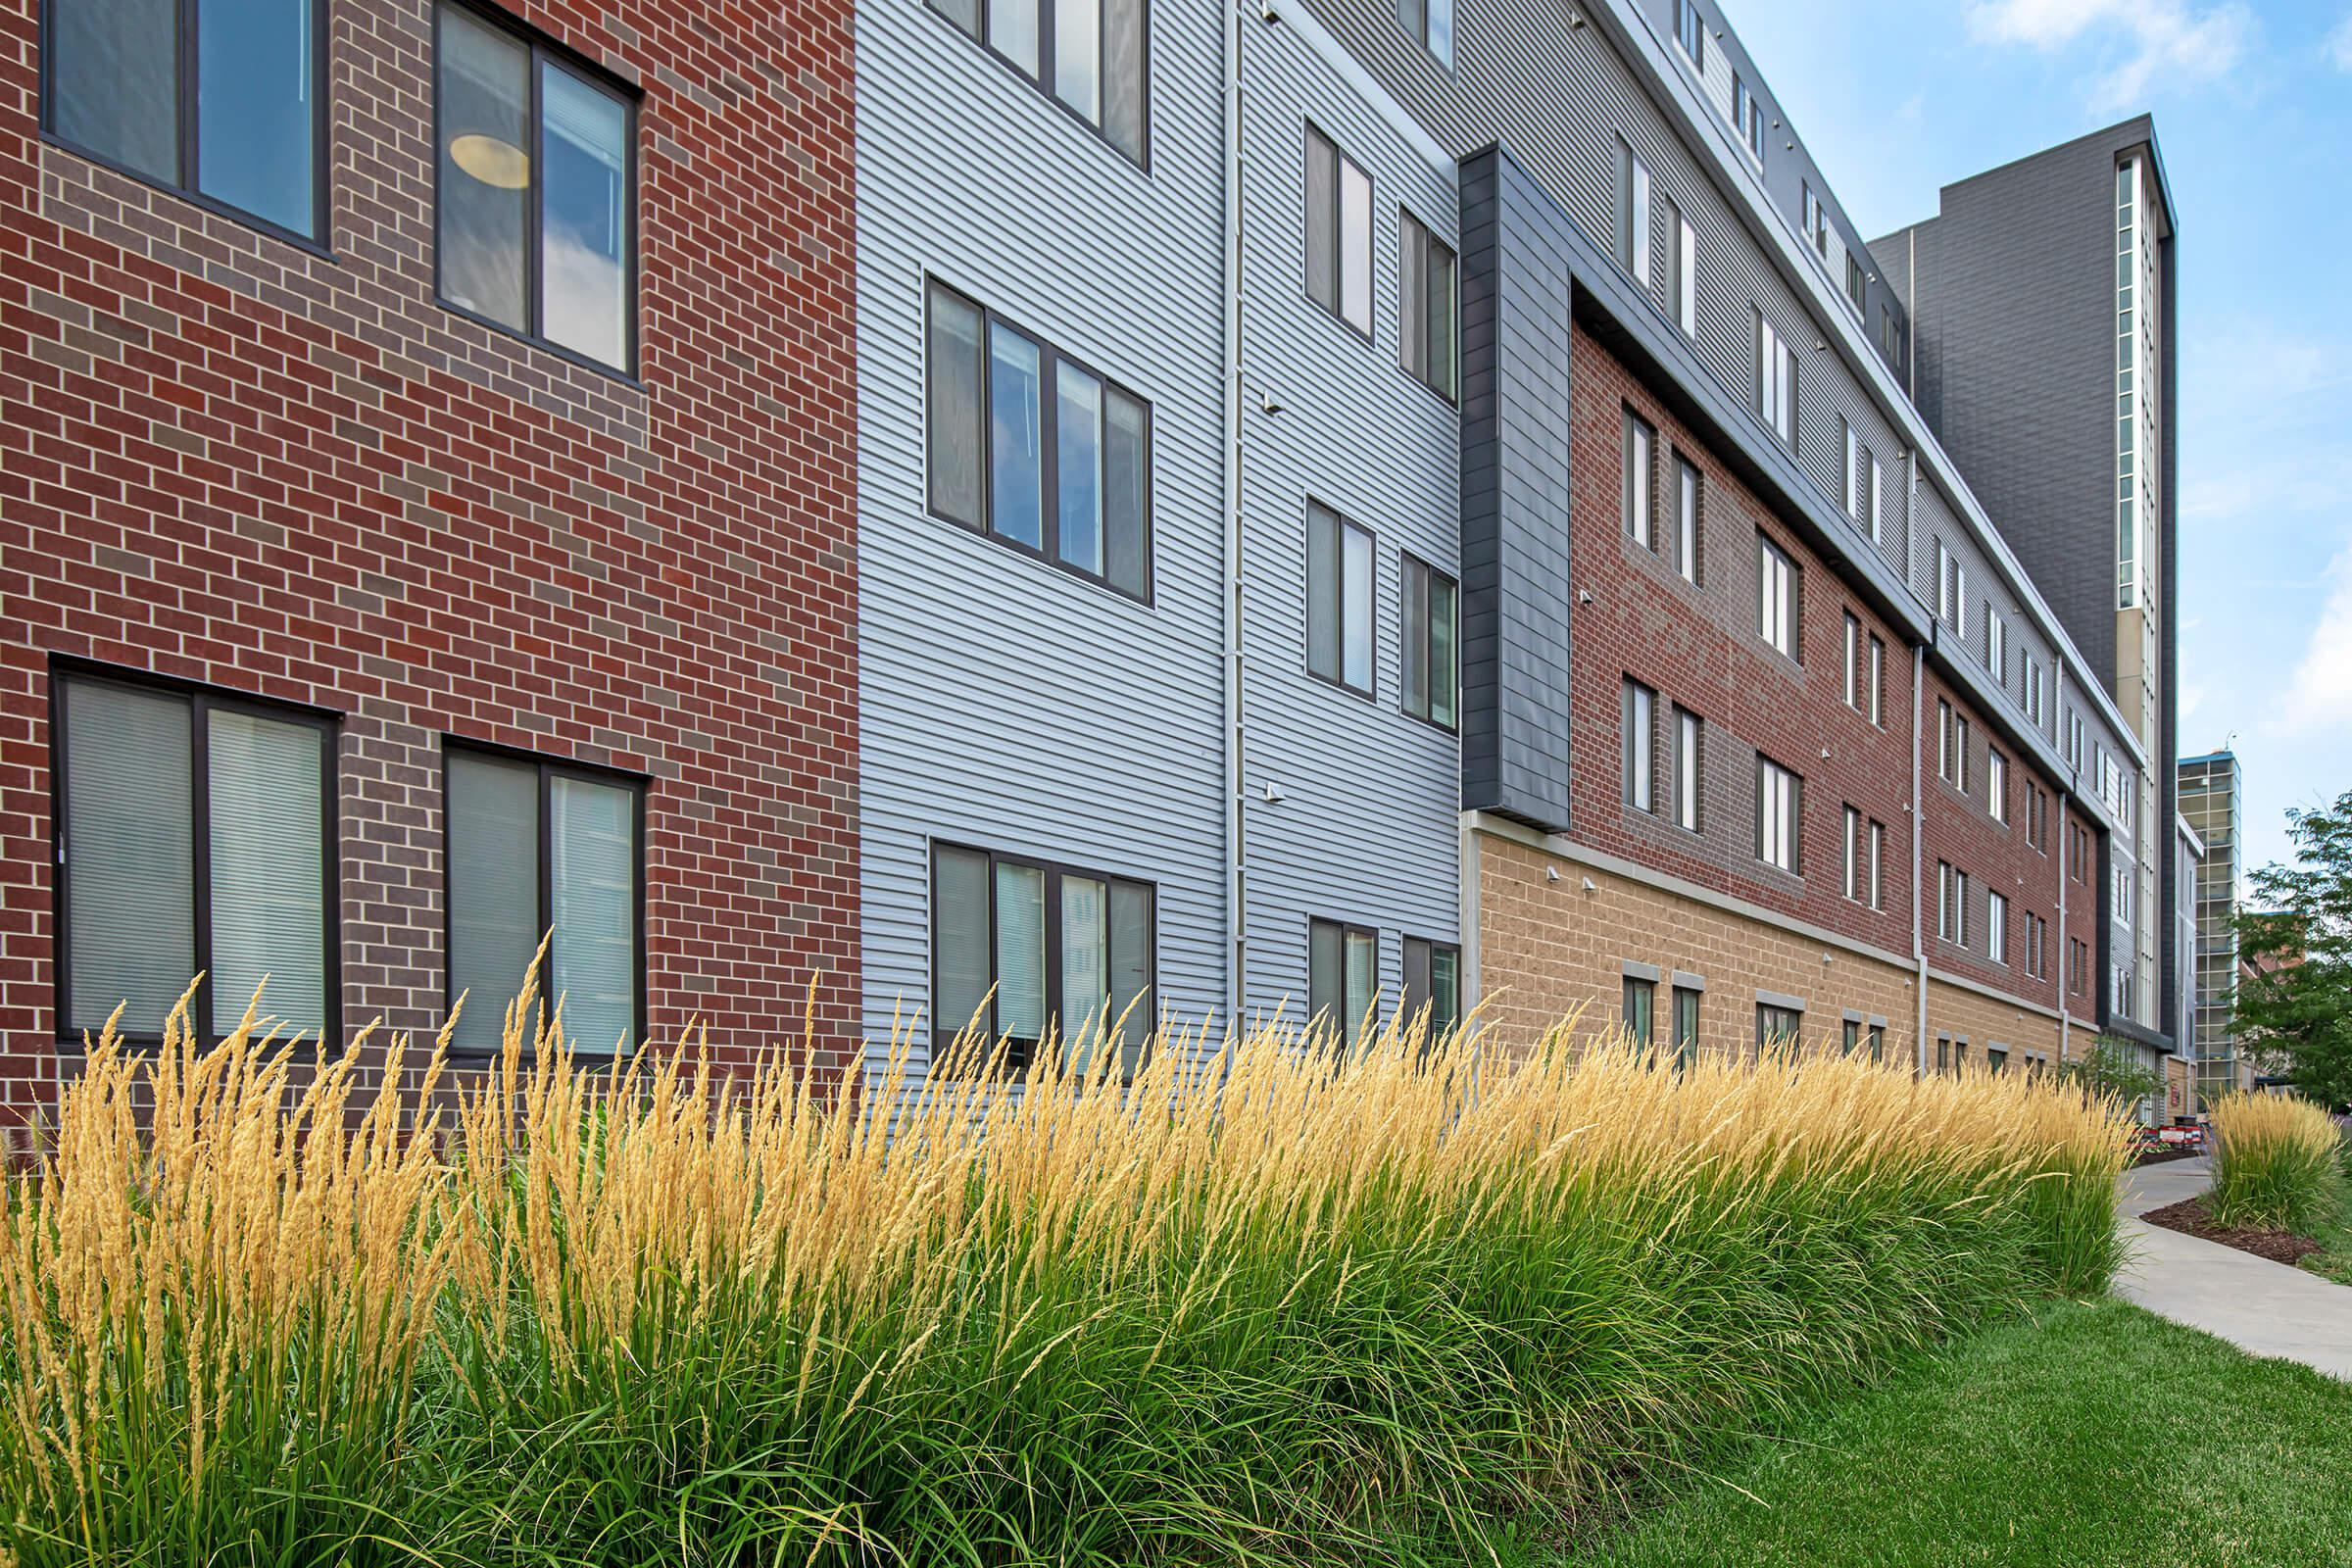 tall grass in front of a brick building